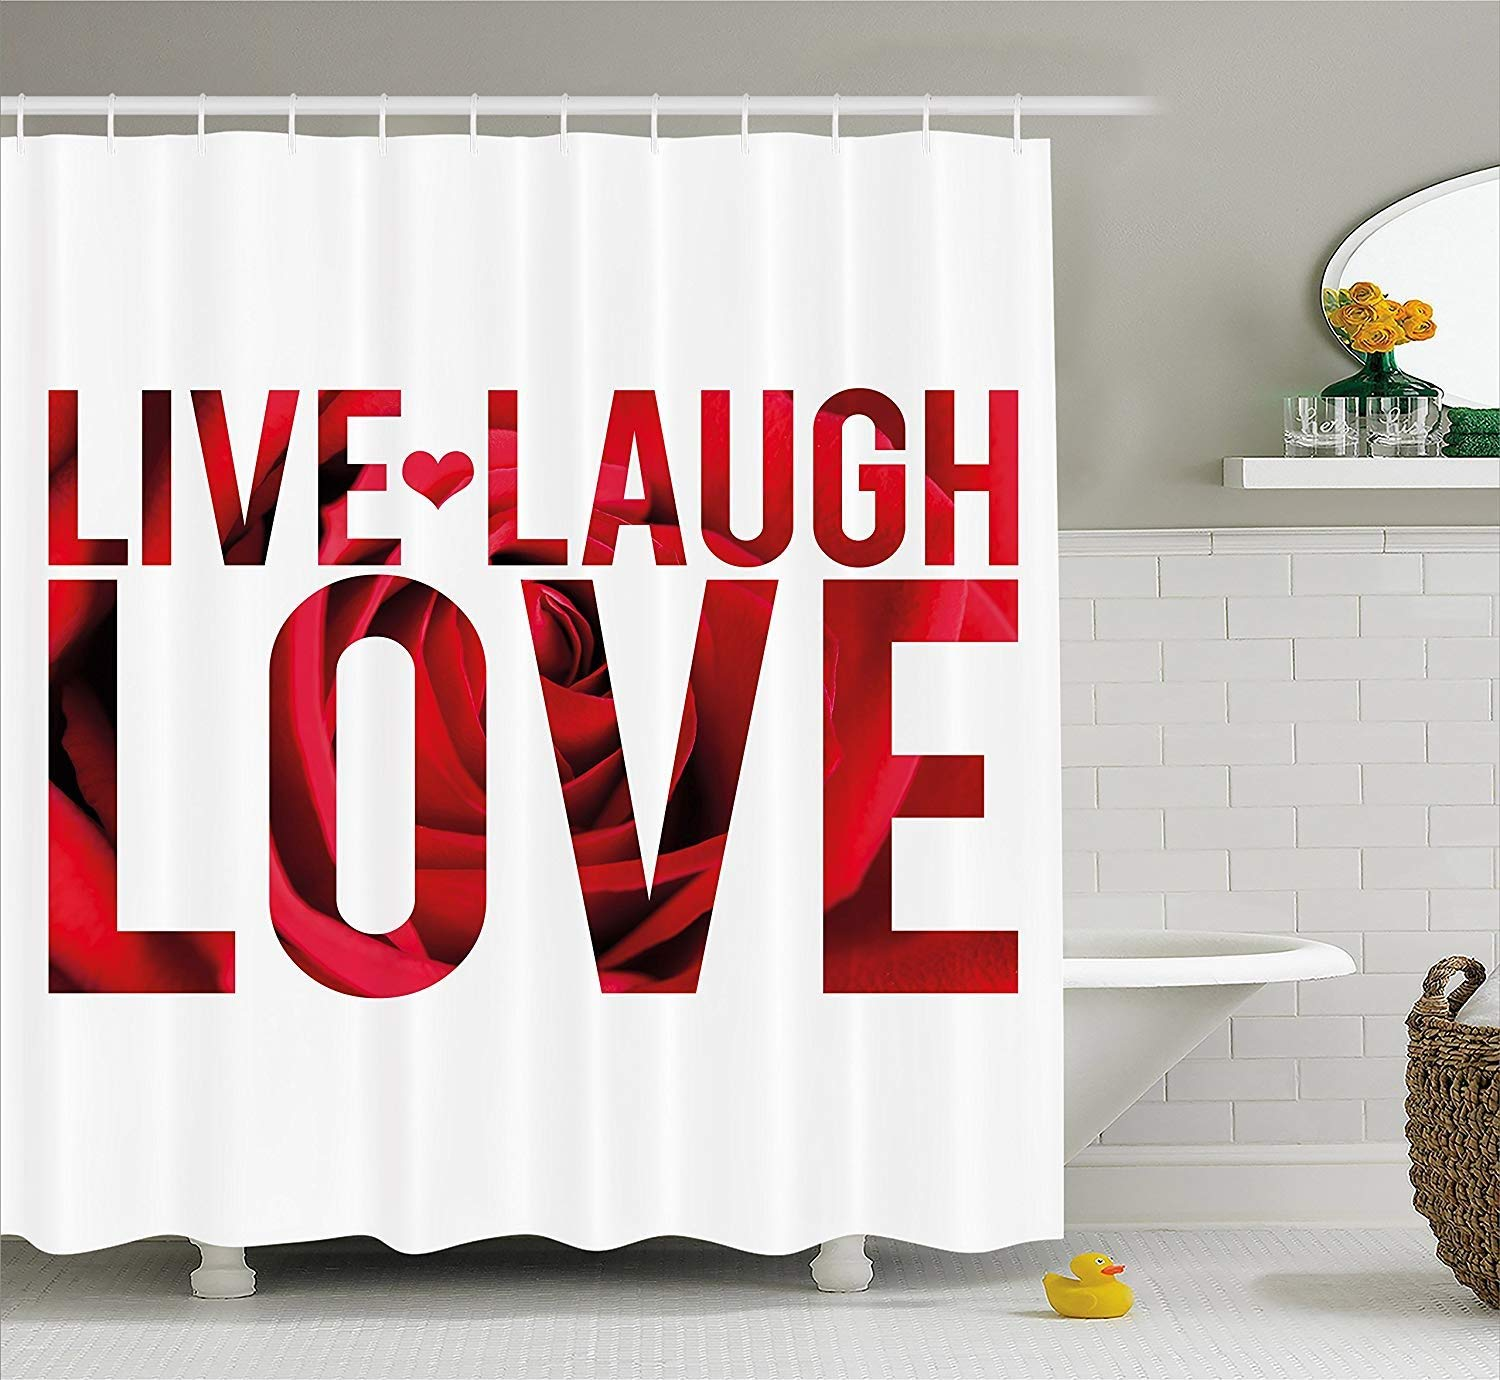 Shower Curtain Live Laugh Love Decor, Typographic Montage Words with Macro Rose Petals Texture Print, Fabric Bathroom Decor Set with Hooks,Red White Black 60X72 Inch